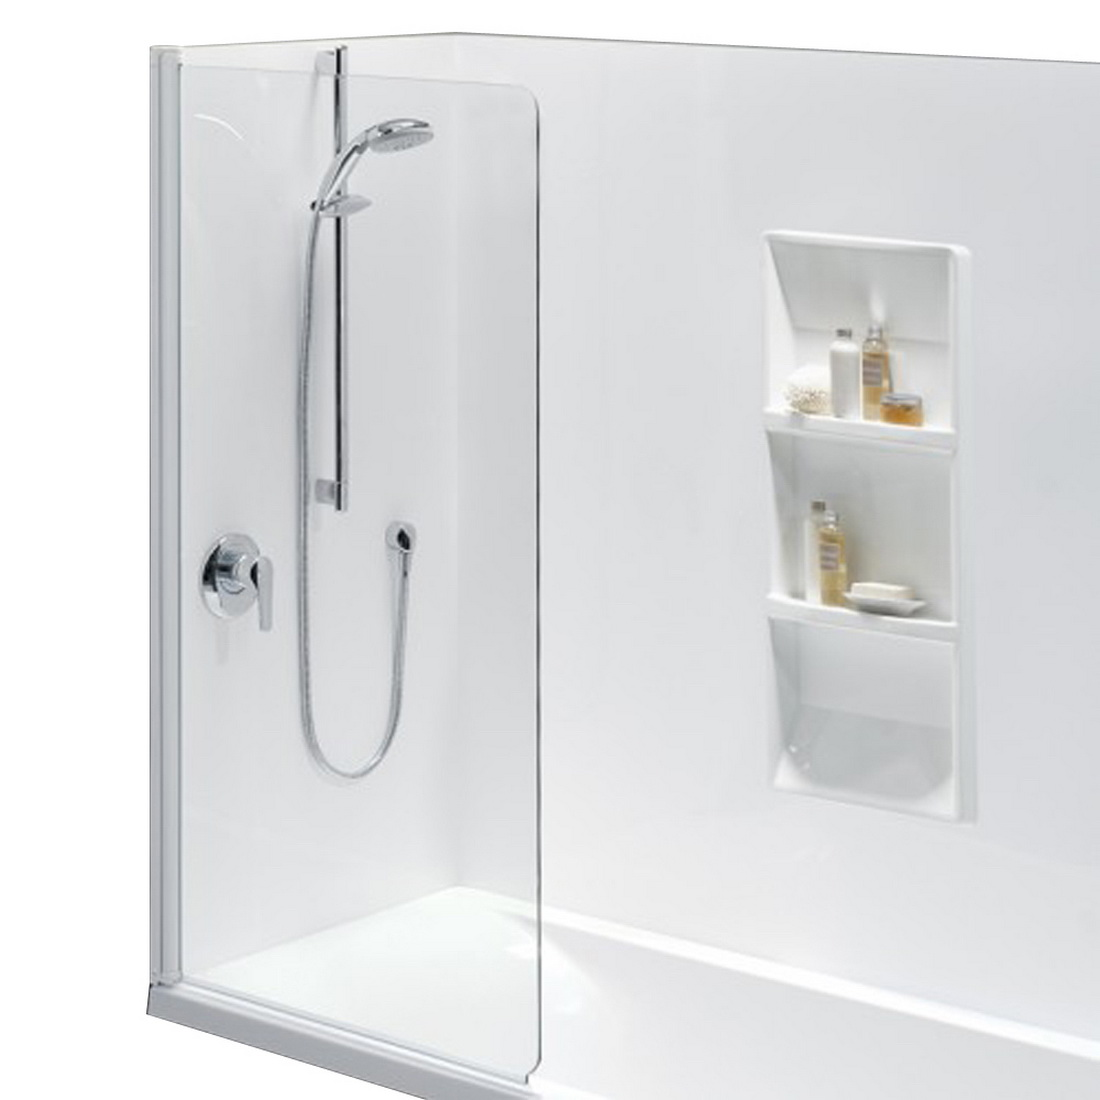 Standard Pivoting Swing Panel 900 x 1500 mm White No Bath Upstand 10090095